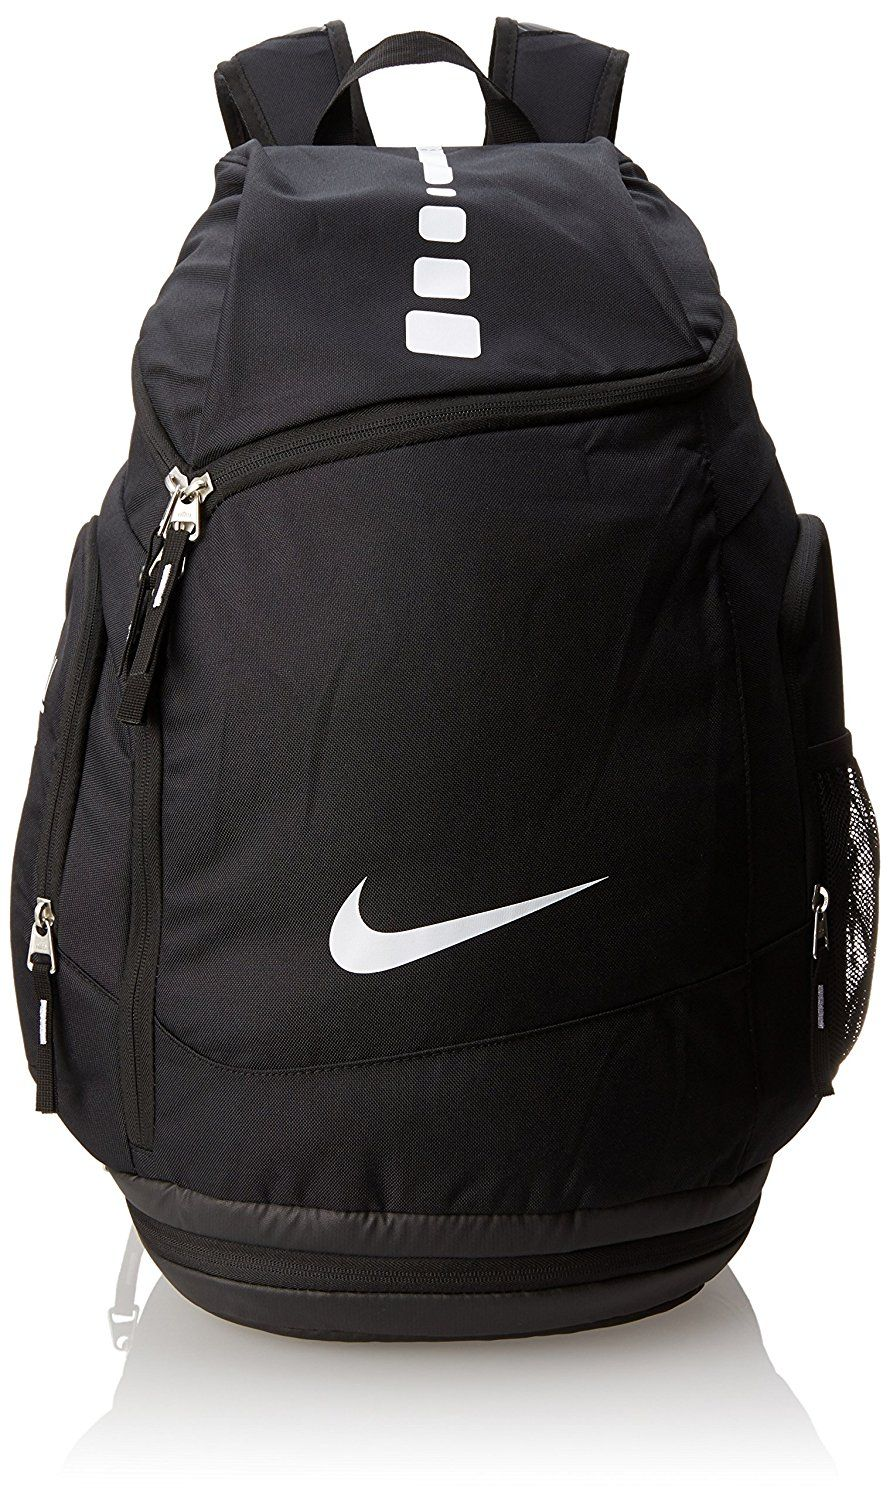 official photos 3bc41 f1da4 Nike Hoops Elite Max Air Team Backpack     A special product just for you.  See it now!   Backpacking bags